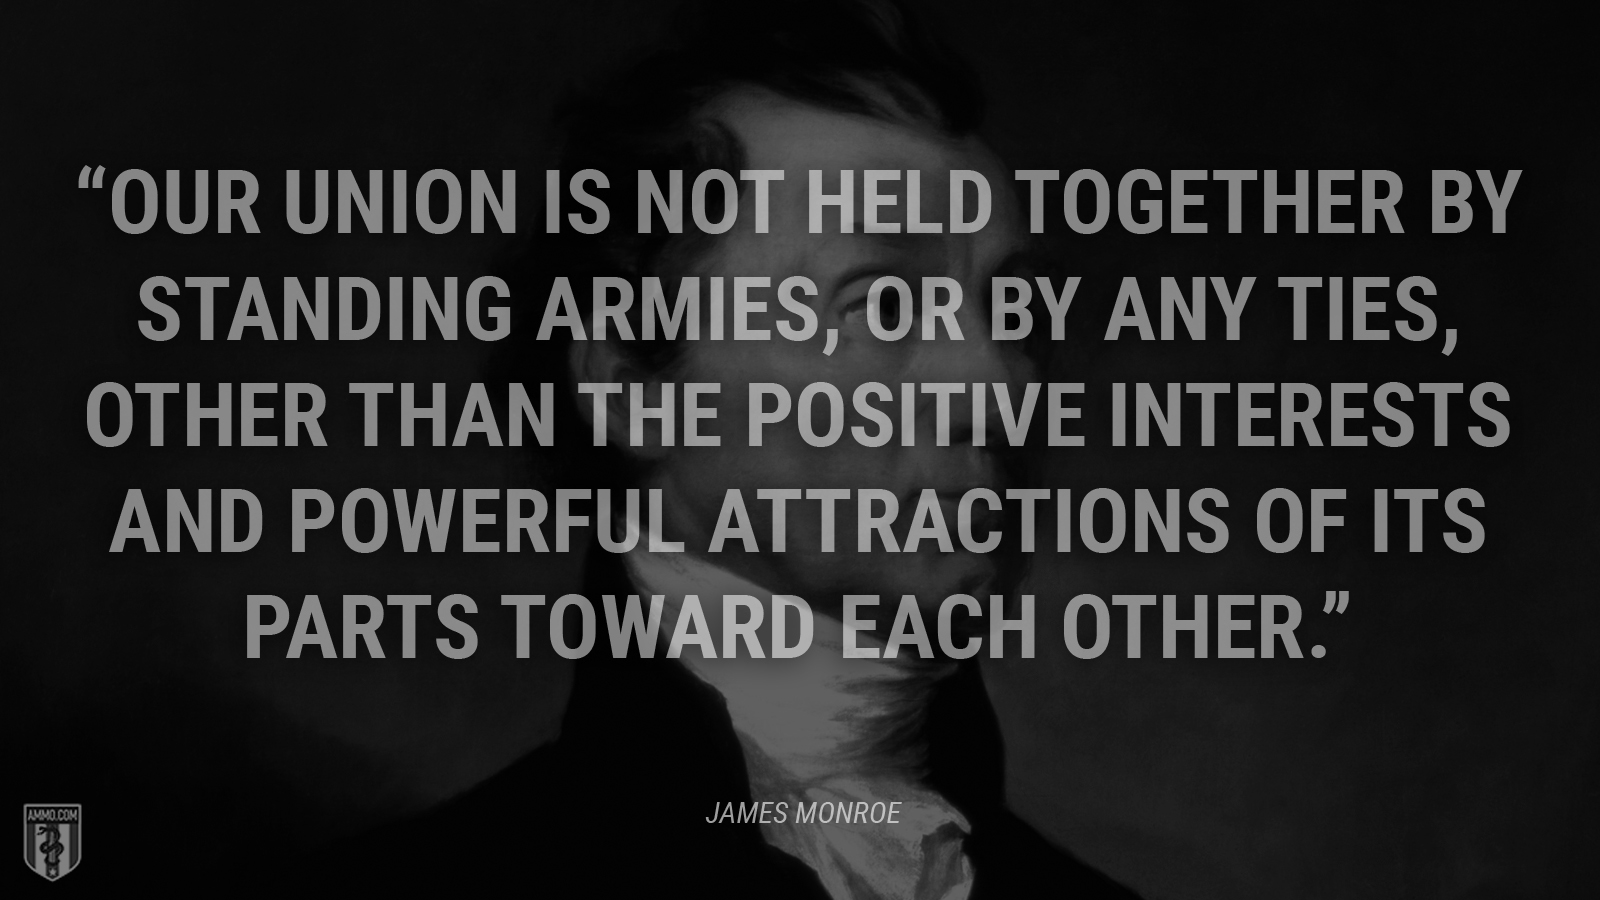 """Our Union is not held together by standing armies, or by any ties, other than the positive interests and powerful attractions of its parts toward each other."" - James Monroe"